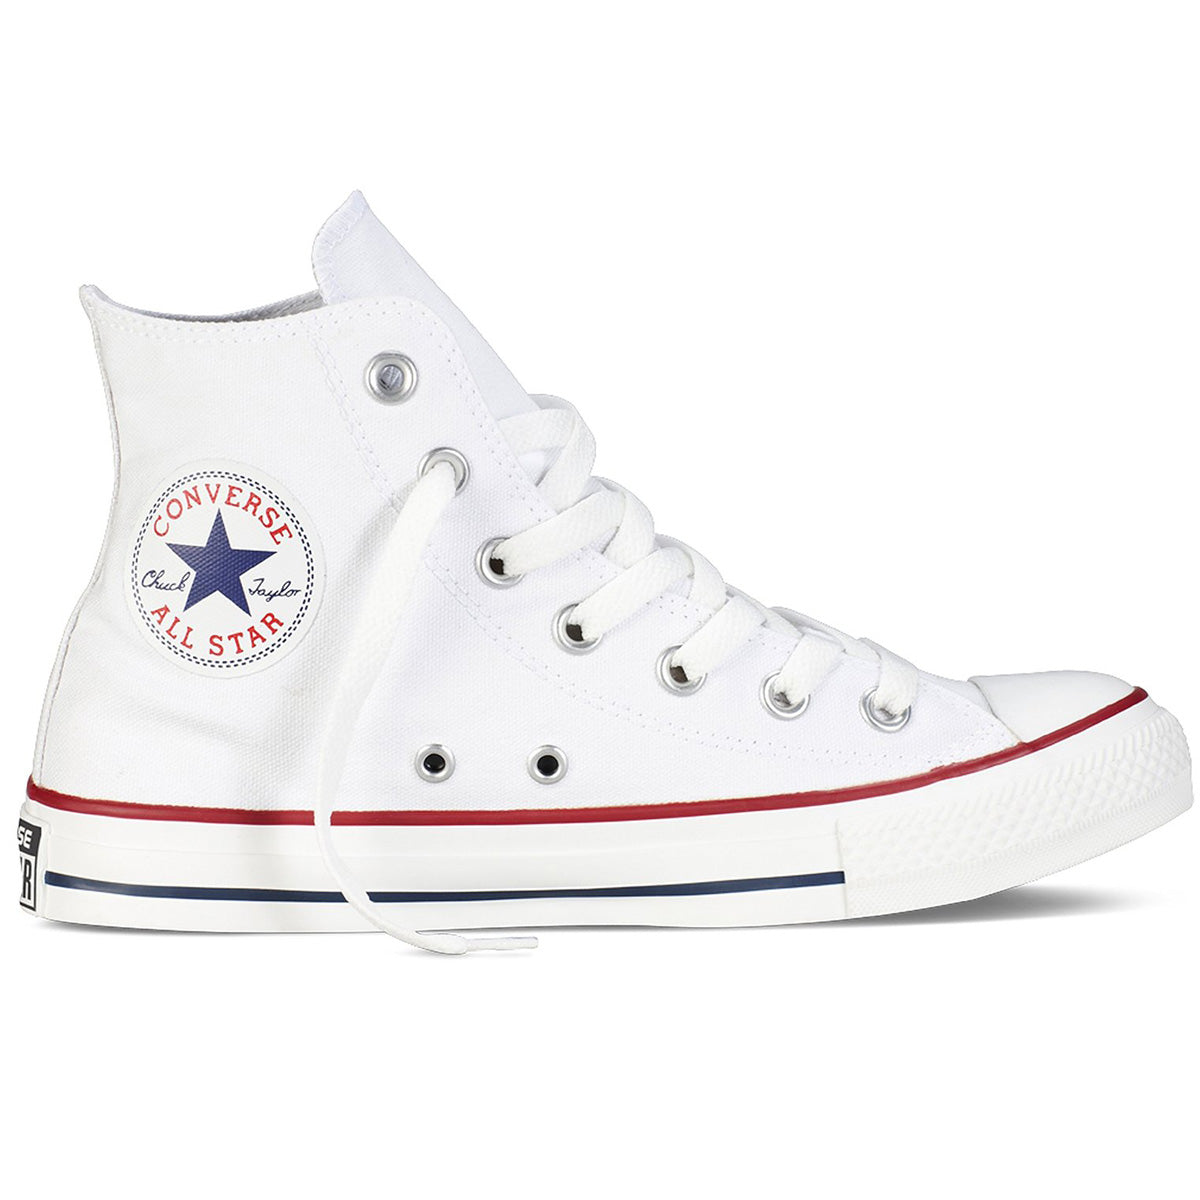 9afc6ffe4ccd Converse Unisex Chuck Taylor All Star High‑Top Sneakers Optical White